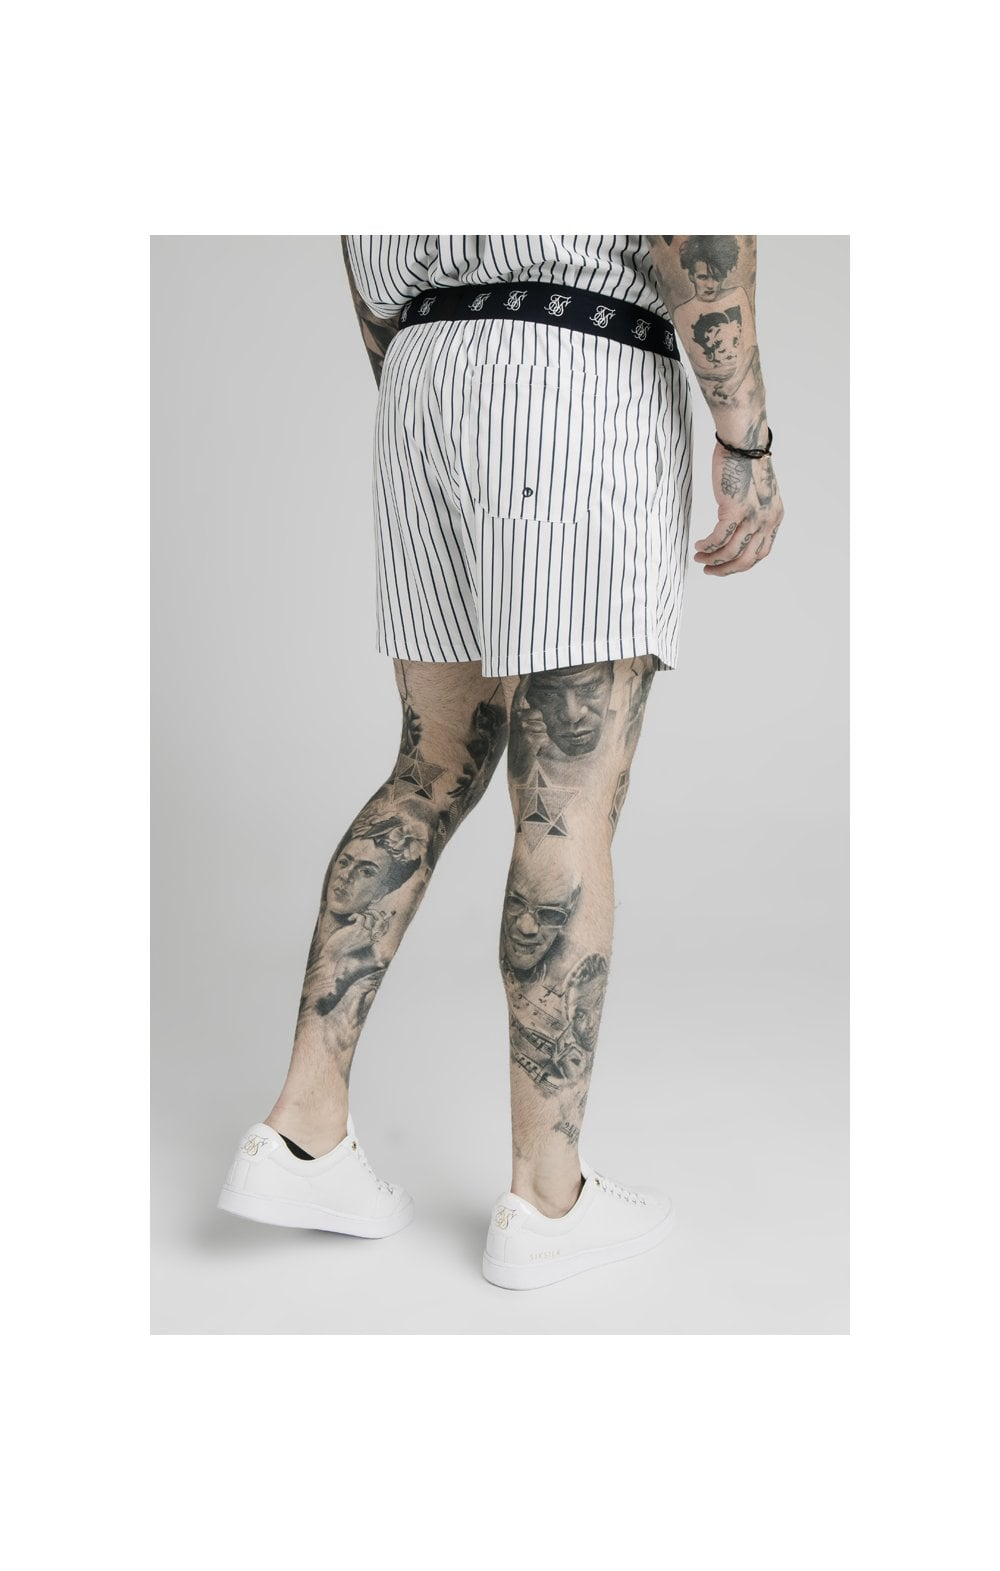 SikSilk Eyelet Elasticated Swim Shorts - White & Navy (2)